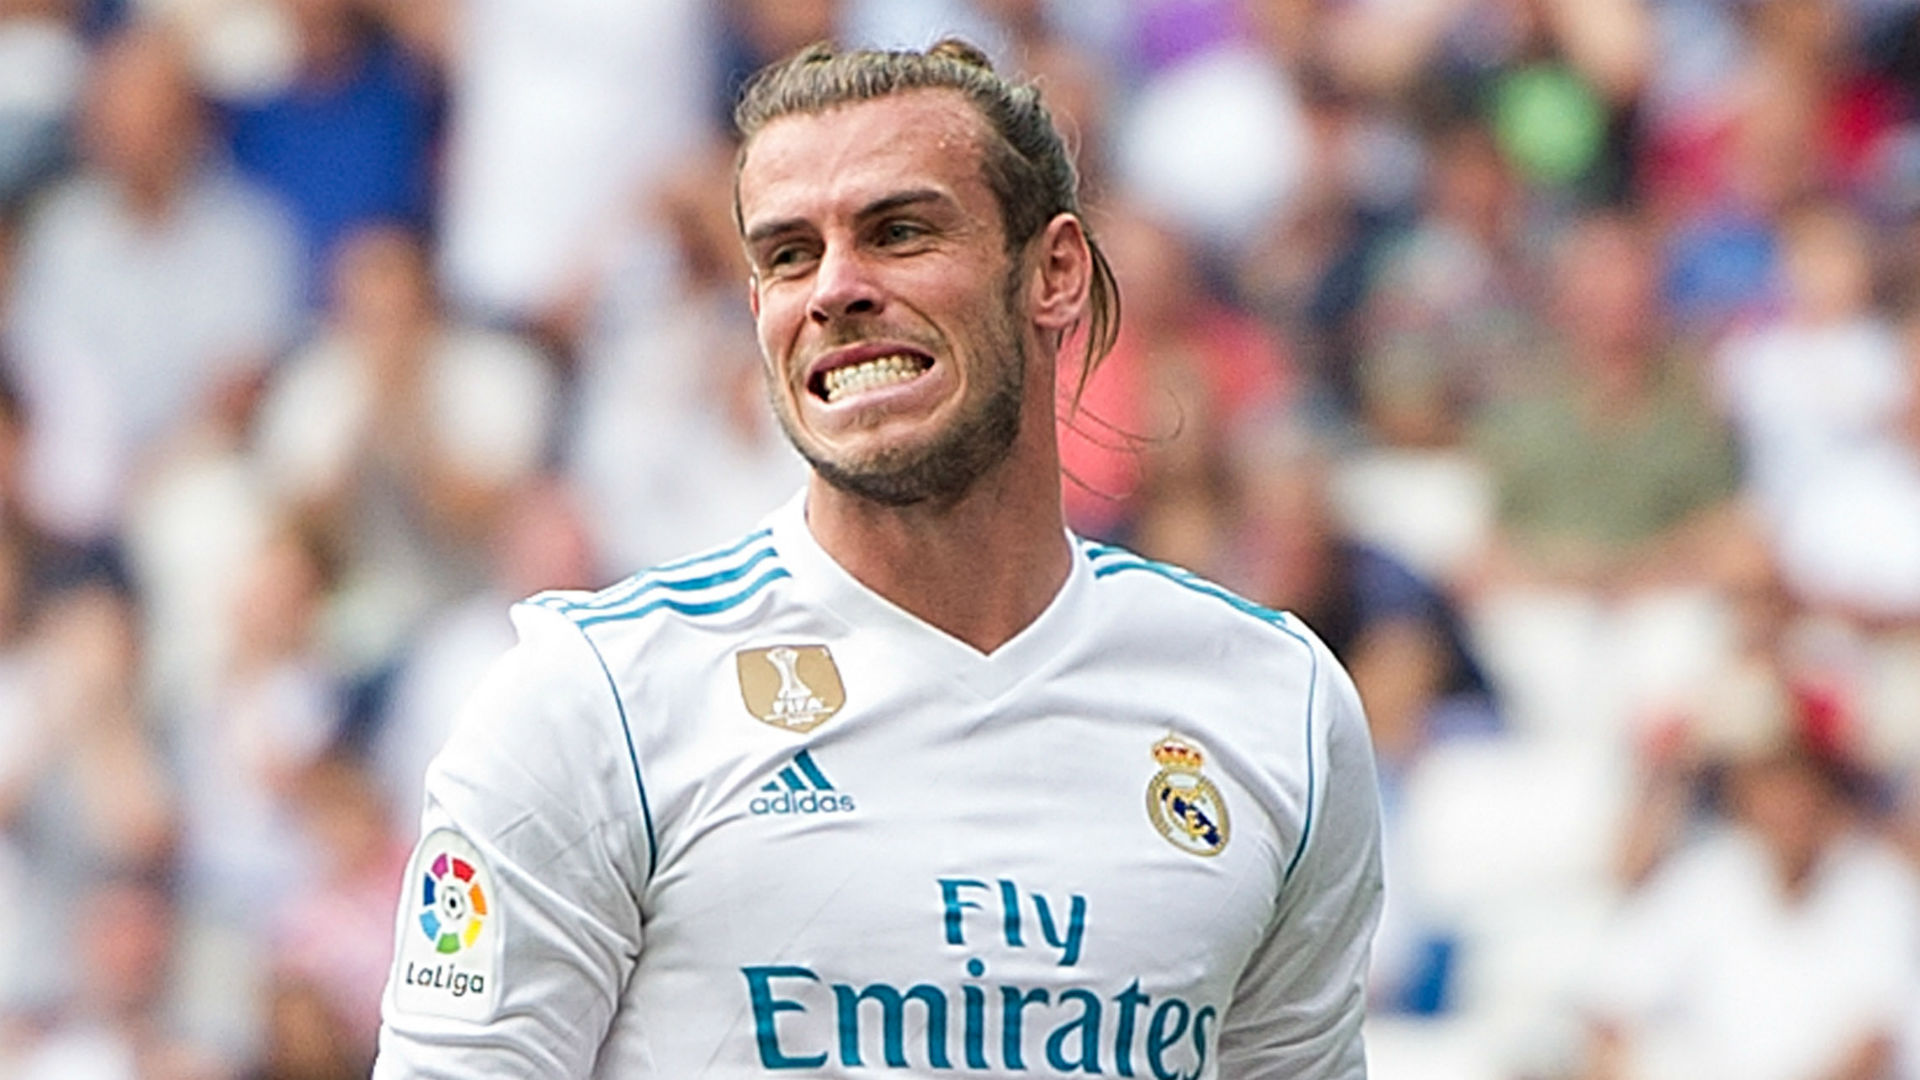 Gareth Bale comments on celebrating against Tottenham Hotspur